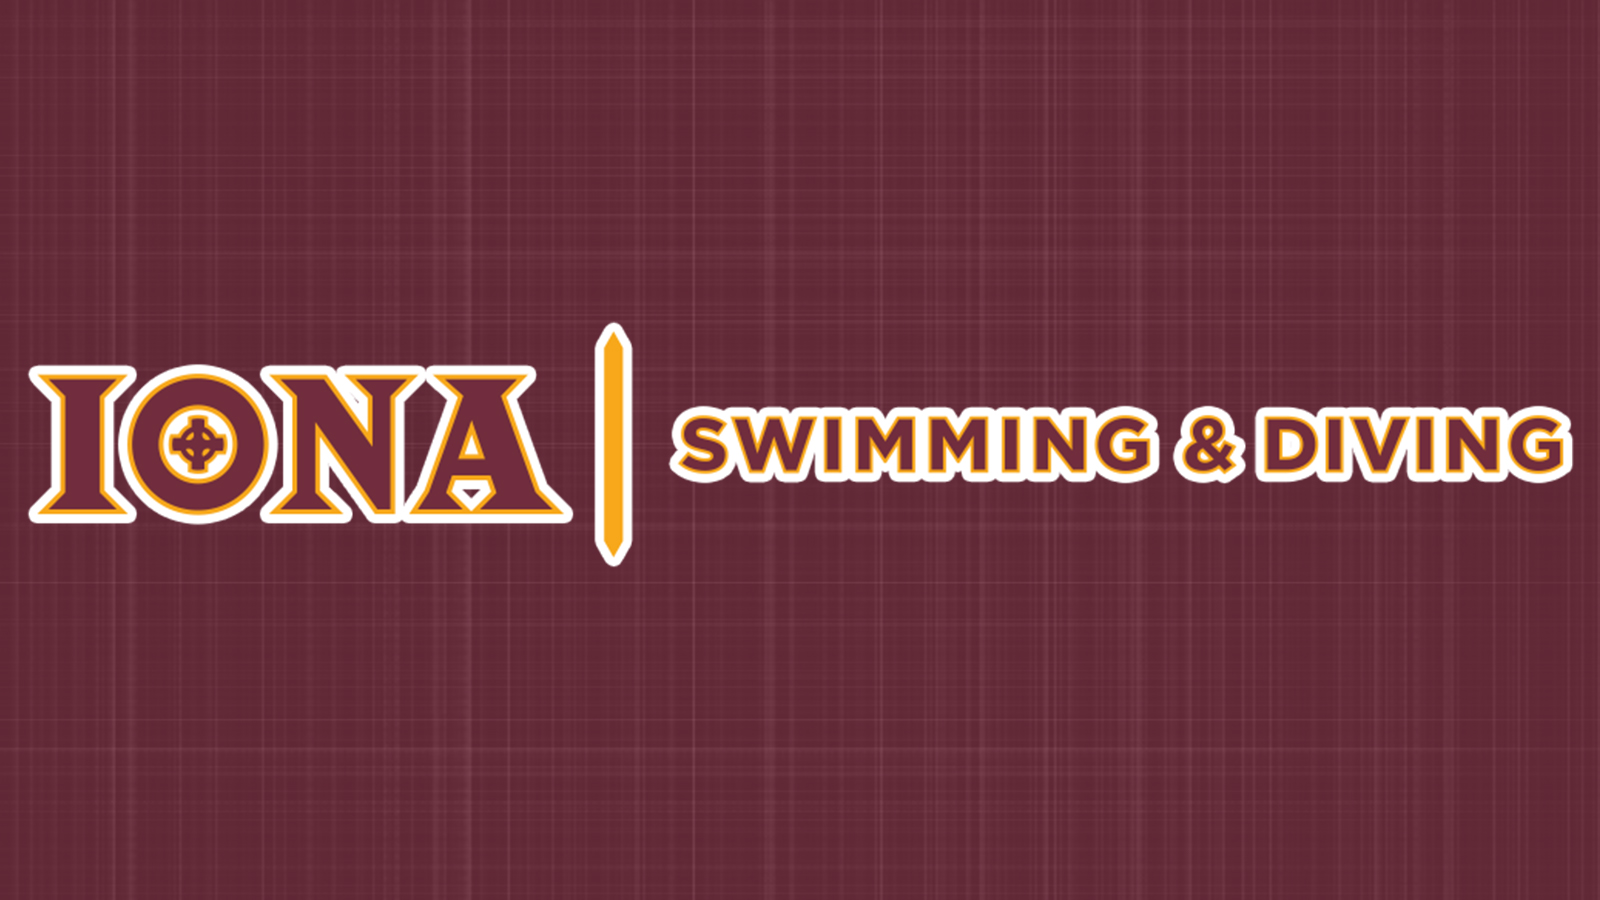 Iona Days Schedule Of Events 2020.Iona Swimming Diving Announces 2019 2020 Schedule Iona